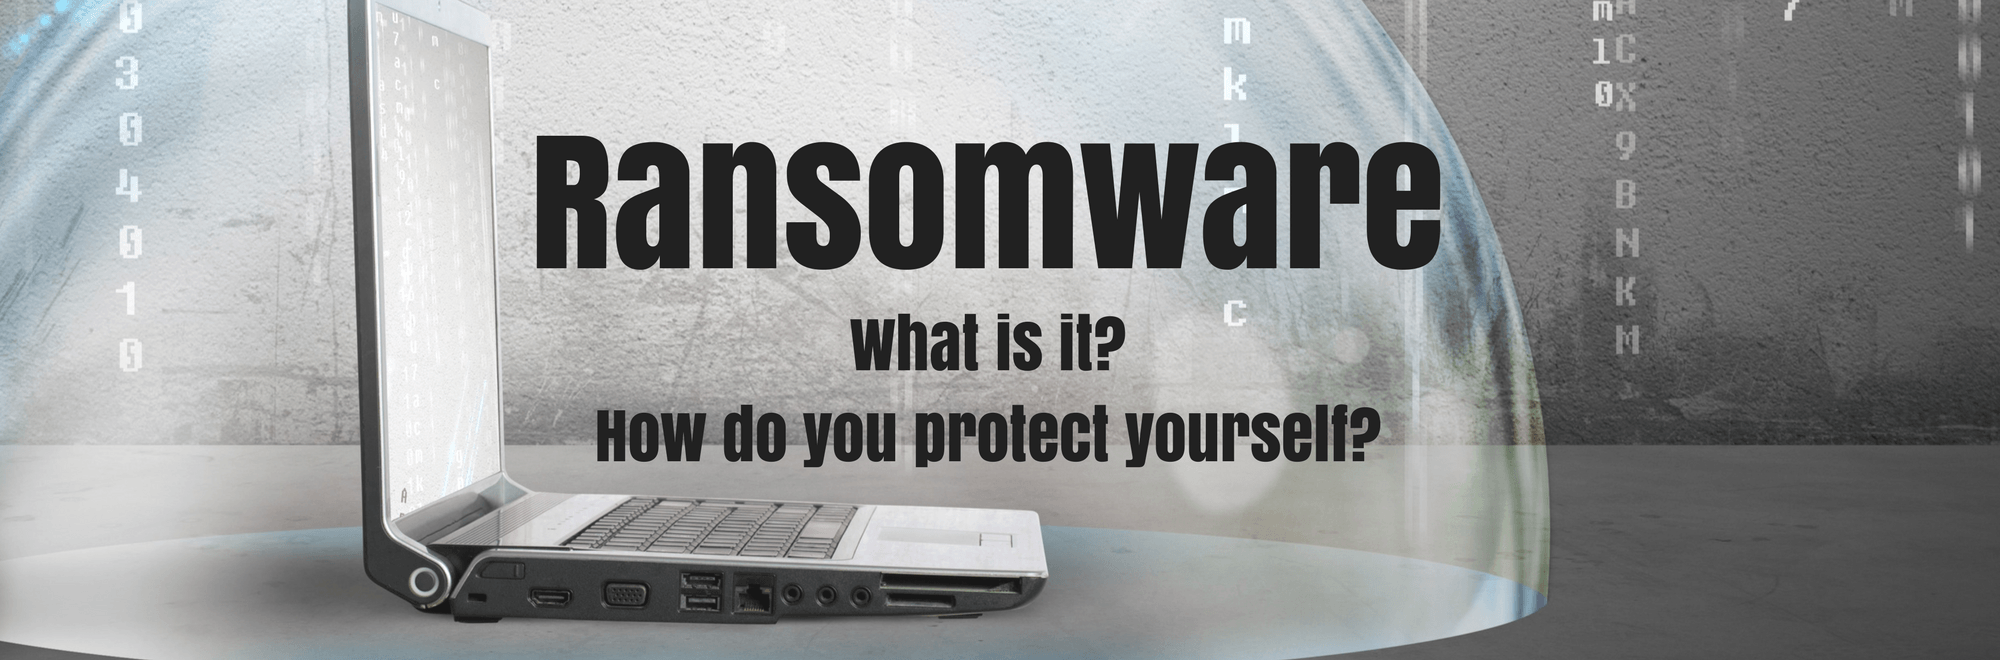 Ransomeware: what is it? How do you protect yourself?